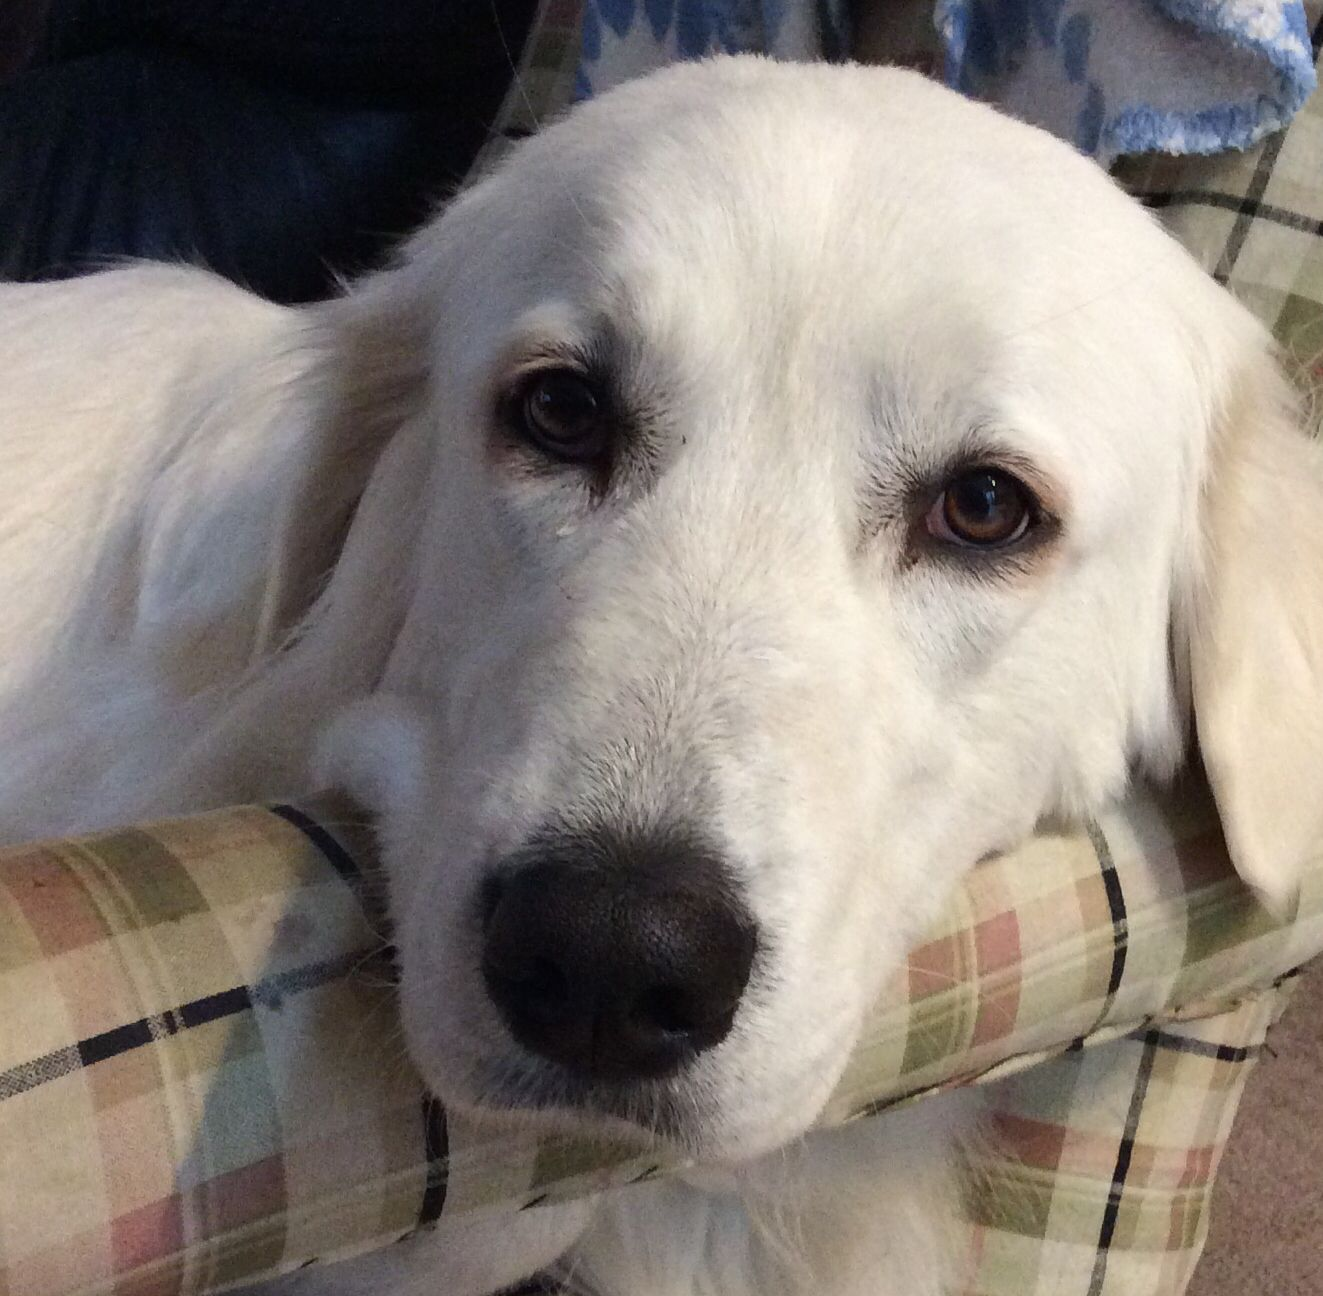 This Is Echo She Was Adopted From The Kingston Ontario Humane Society When We Adopted Her She Attacked 2 Of My Other Dogs Great Pyrenees Dogs And Puppies